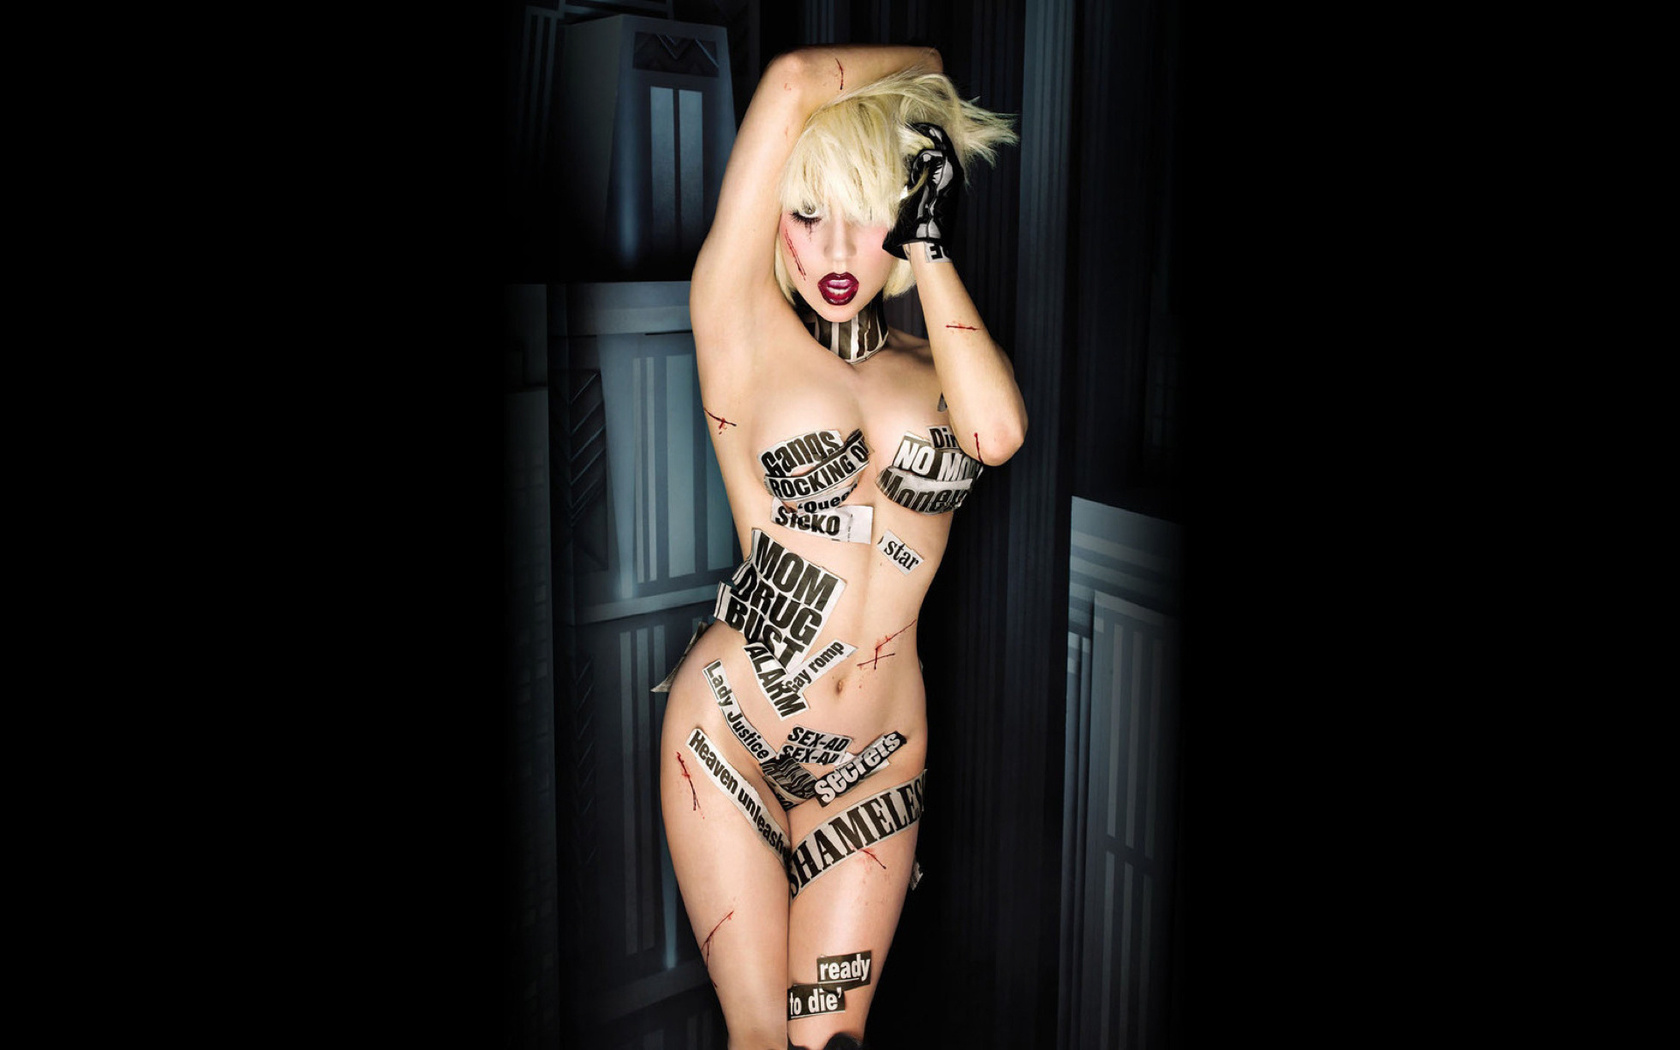 Lady Gaga Poses Nude, Reveals Troubling Medical Issues